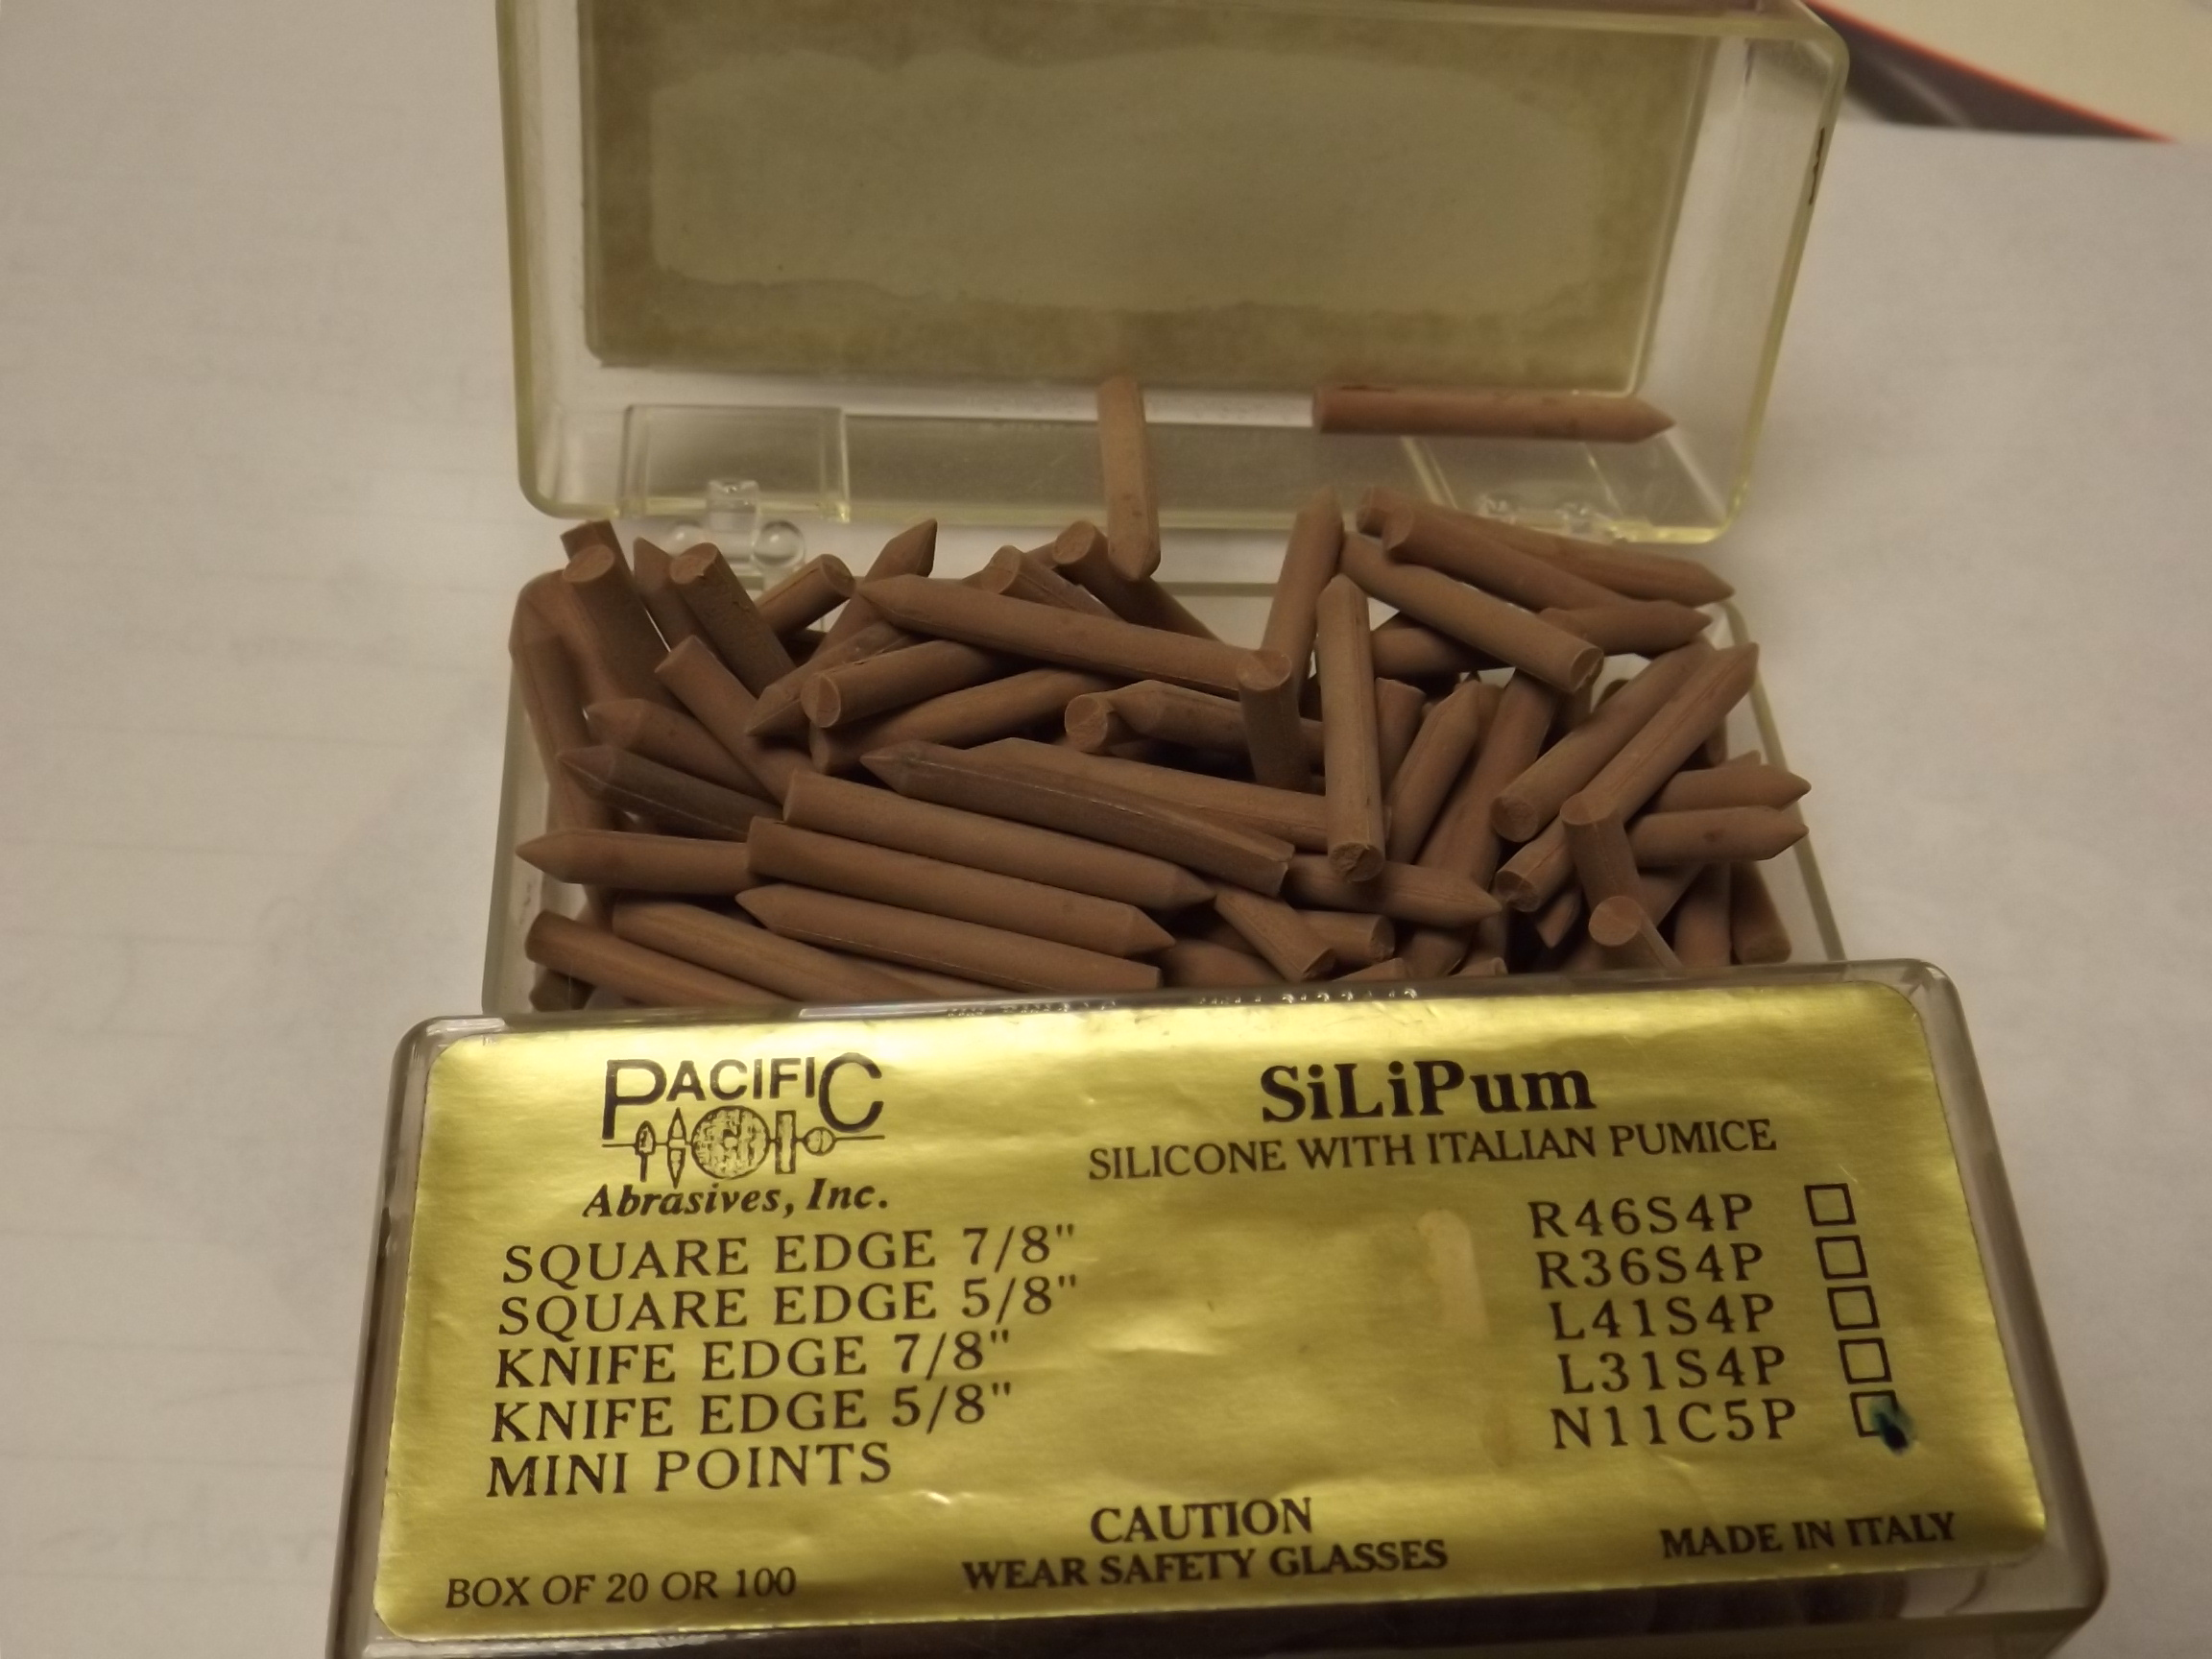 ST1105T Pacific Abrasive's SiliPum- Mini Points bx of 100-Old Stock! N11C5P